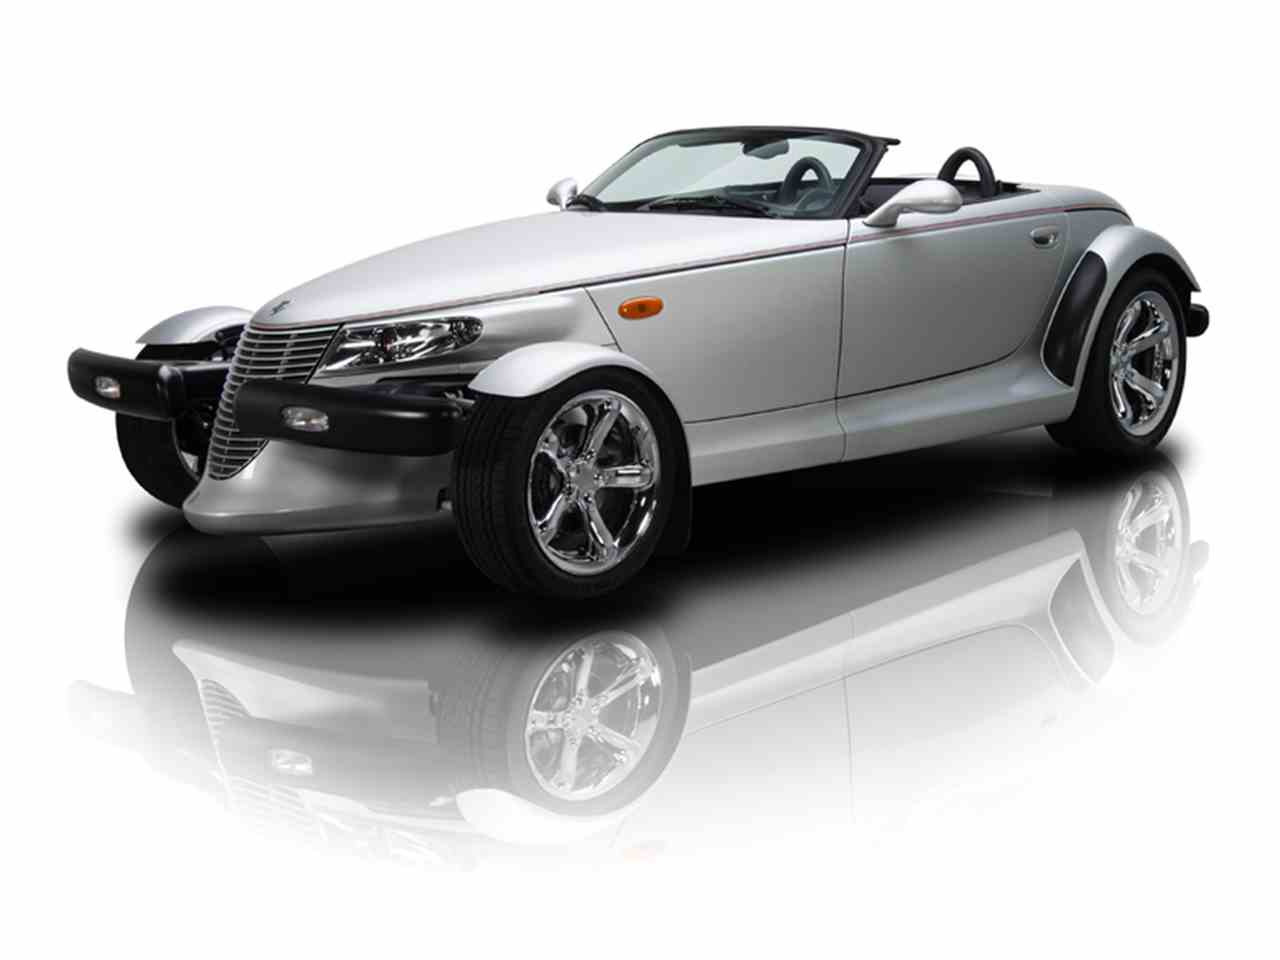 2000 Plymouth Prowler for Sale - CC-923776